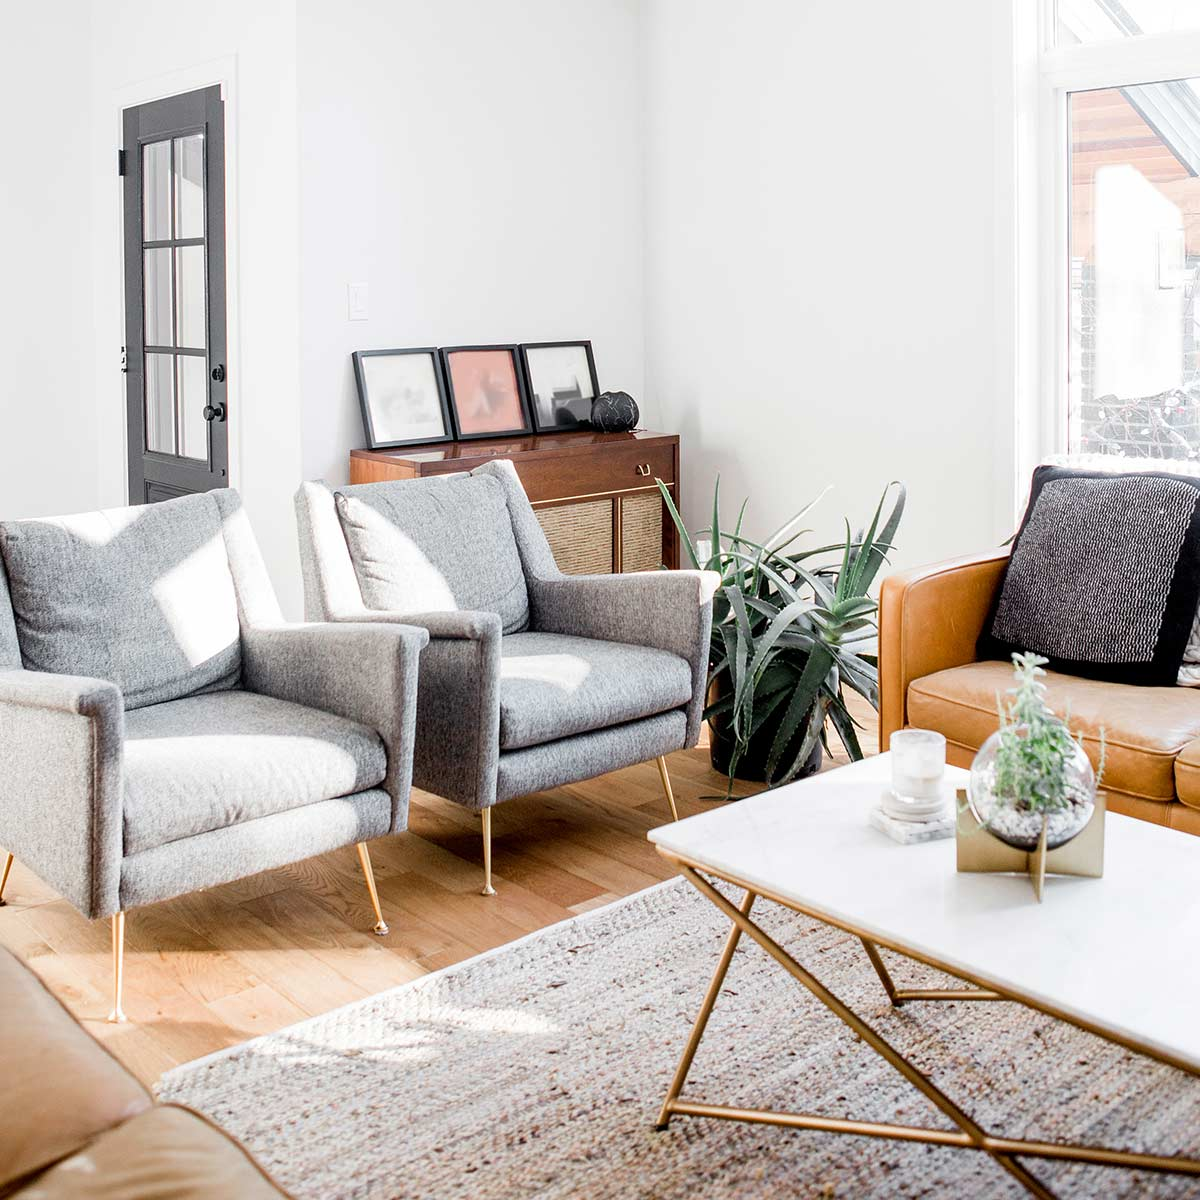 Simple white living room with grey and leather furniture.